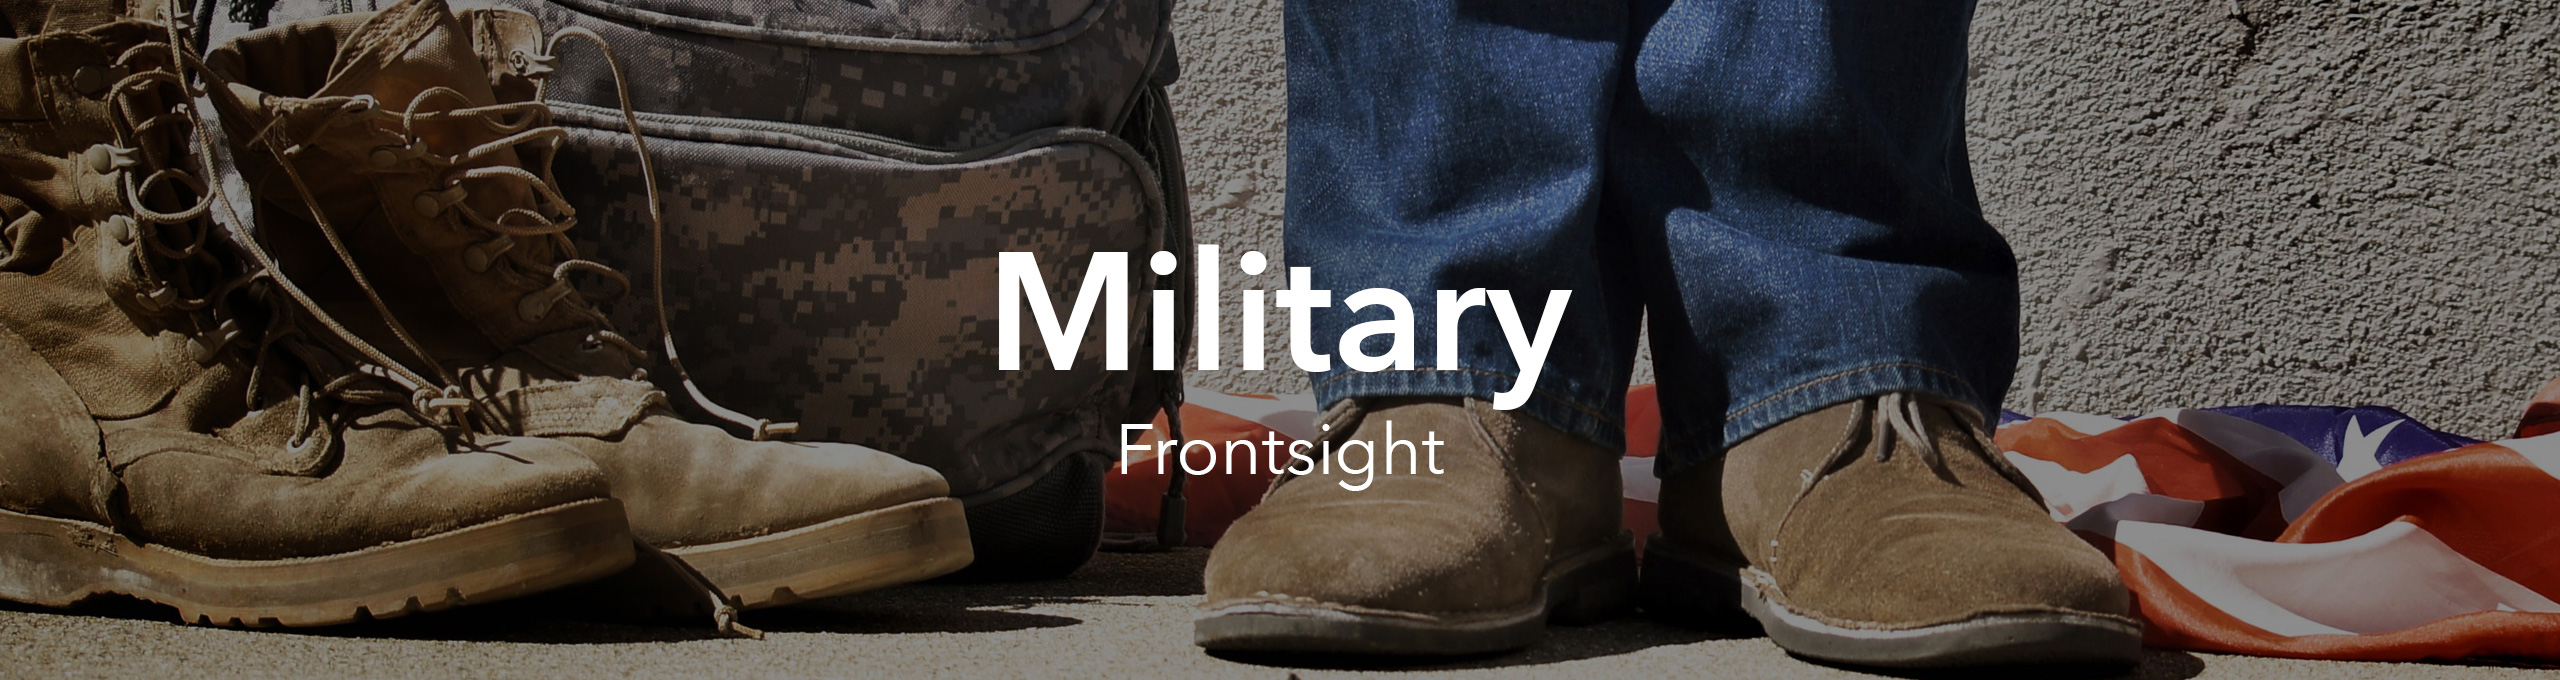 Military (Frontsight)